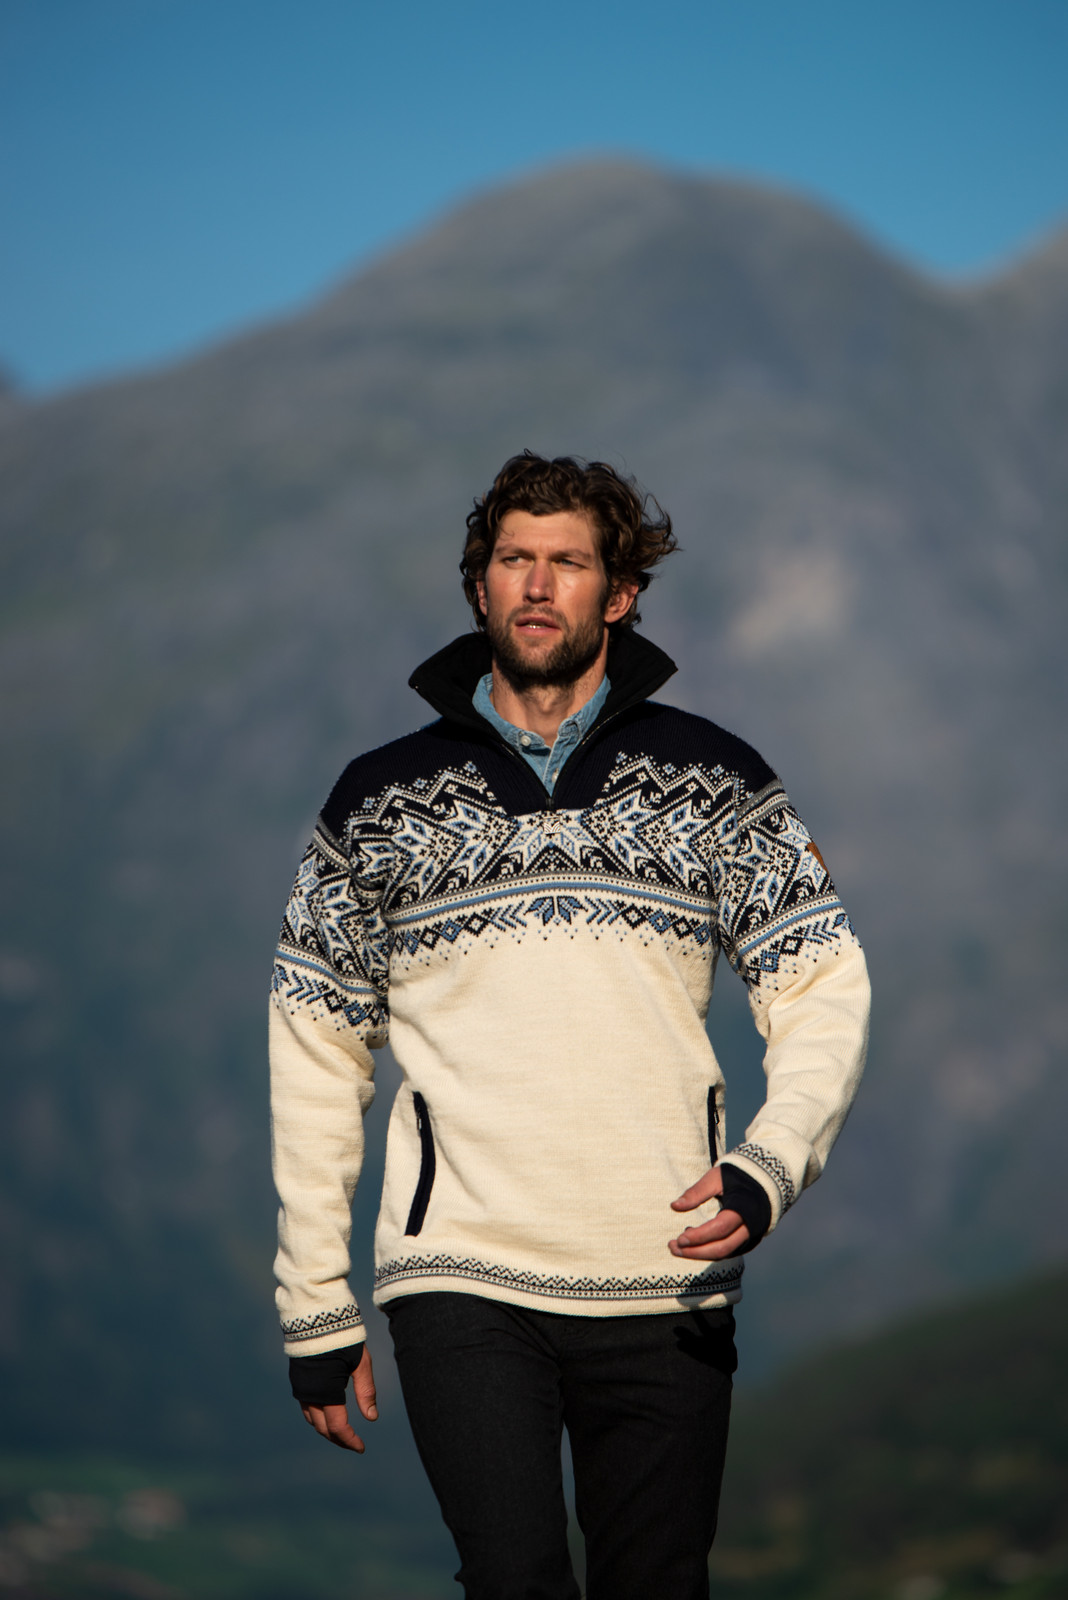 Dale of Norway Vail Weatherproof Sweater, Mens - Off White/Smoke/Midnight Navy/Navy/Blue Shadow, 93981-A (93981-A)